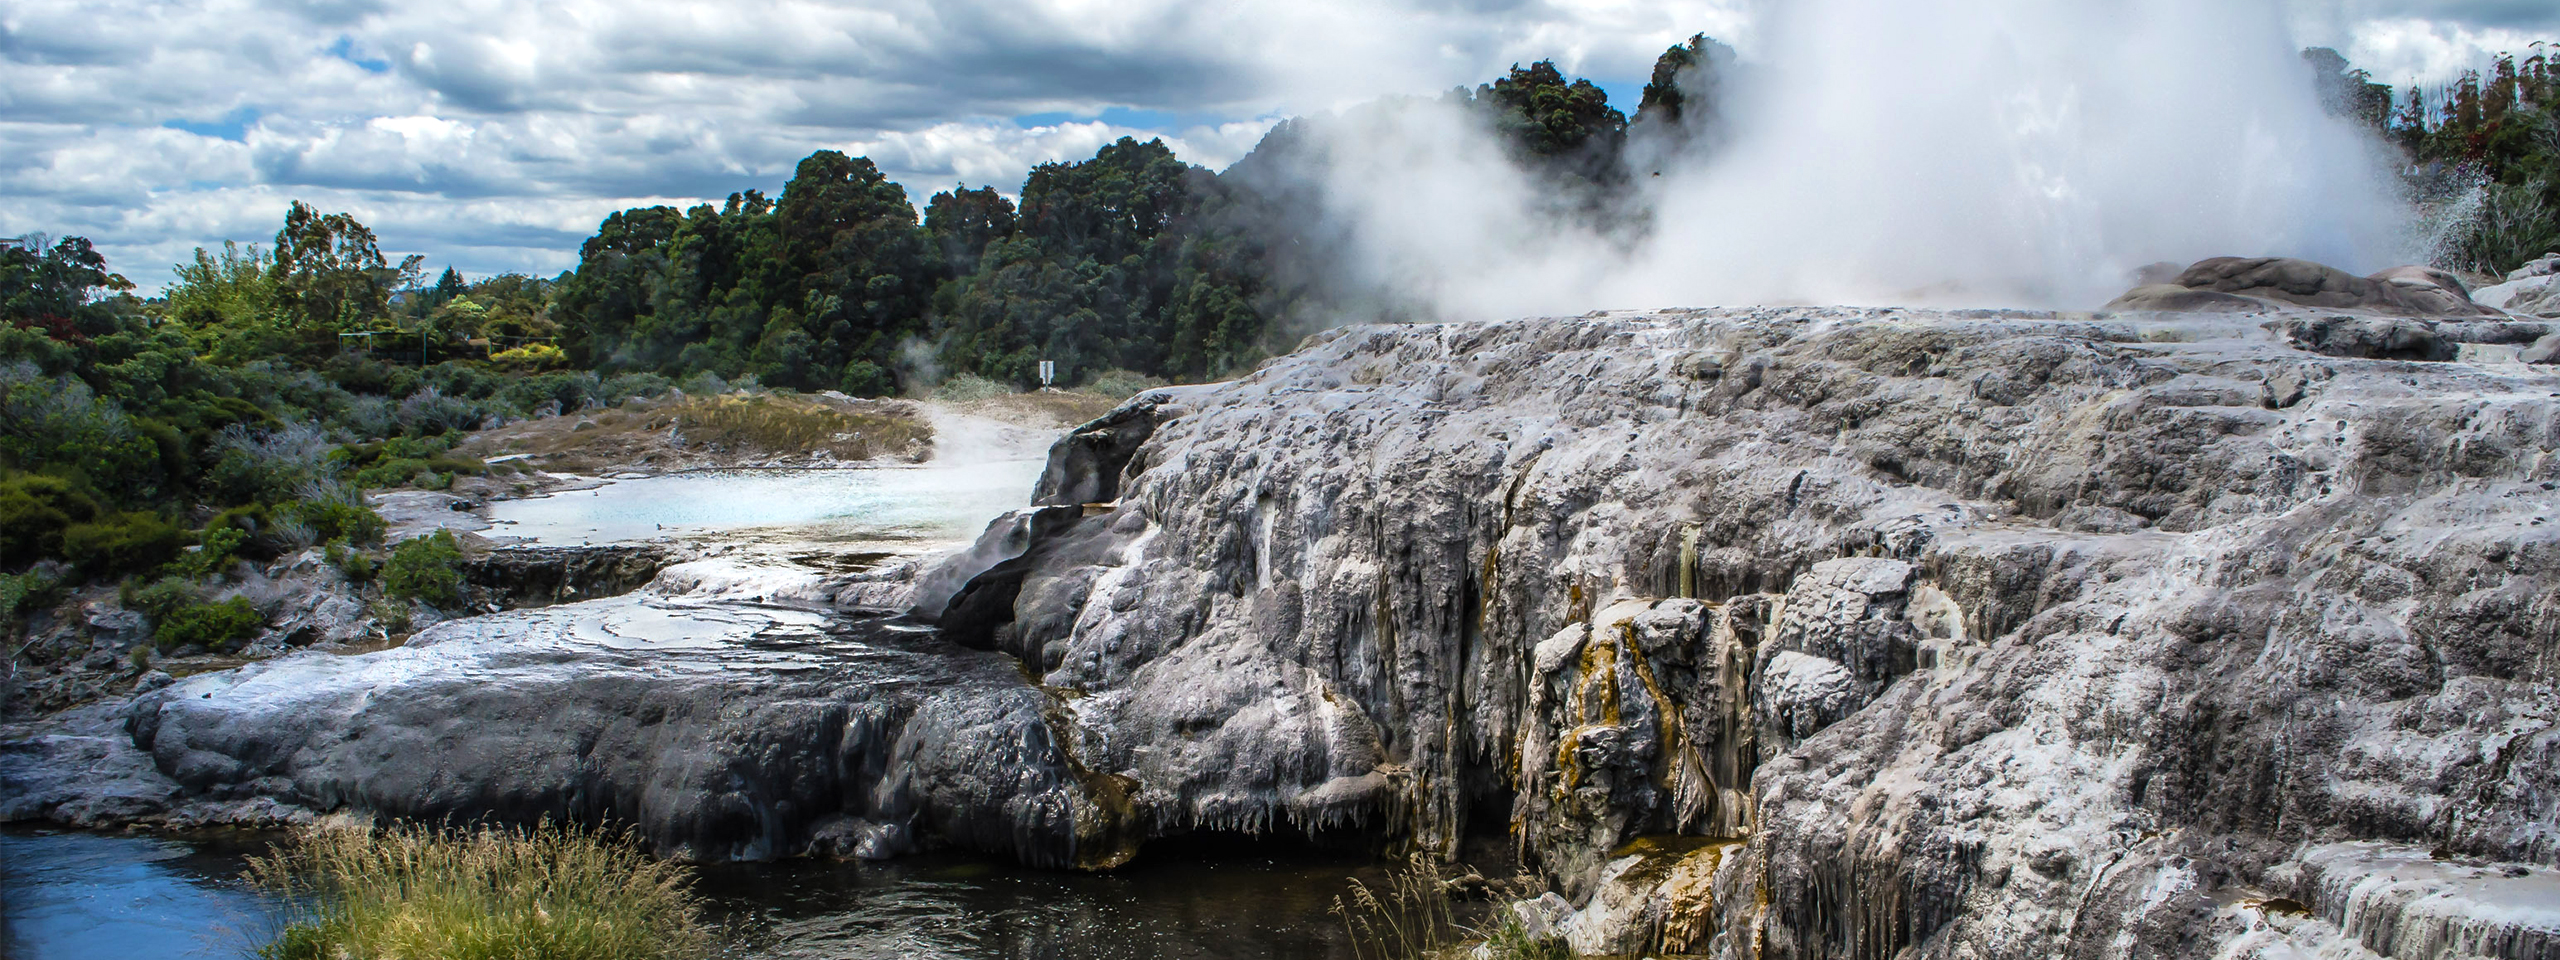 Te Puia Thermal Springs